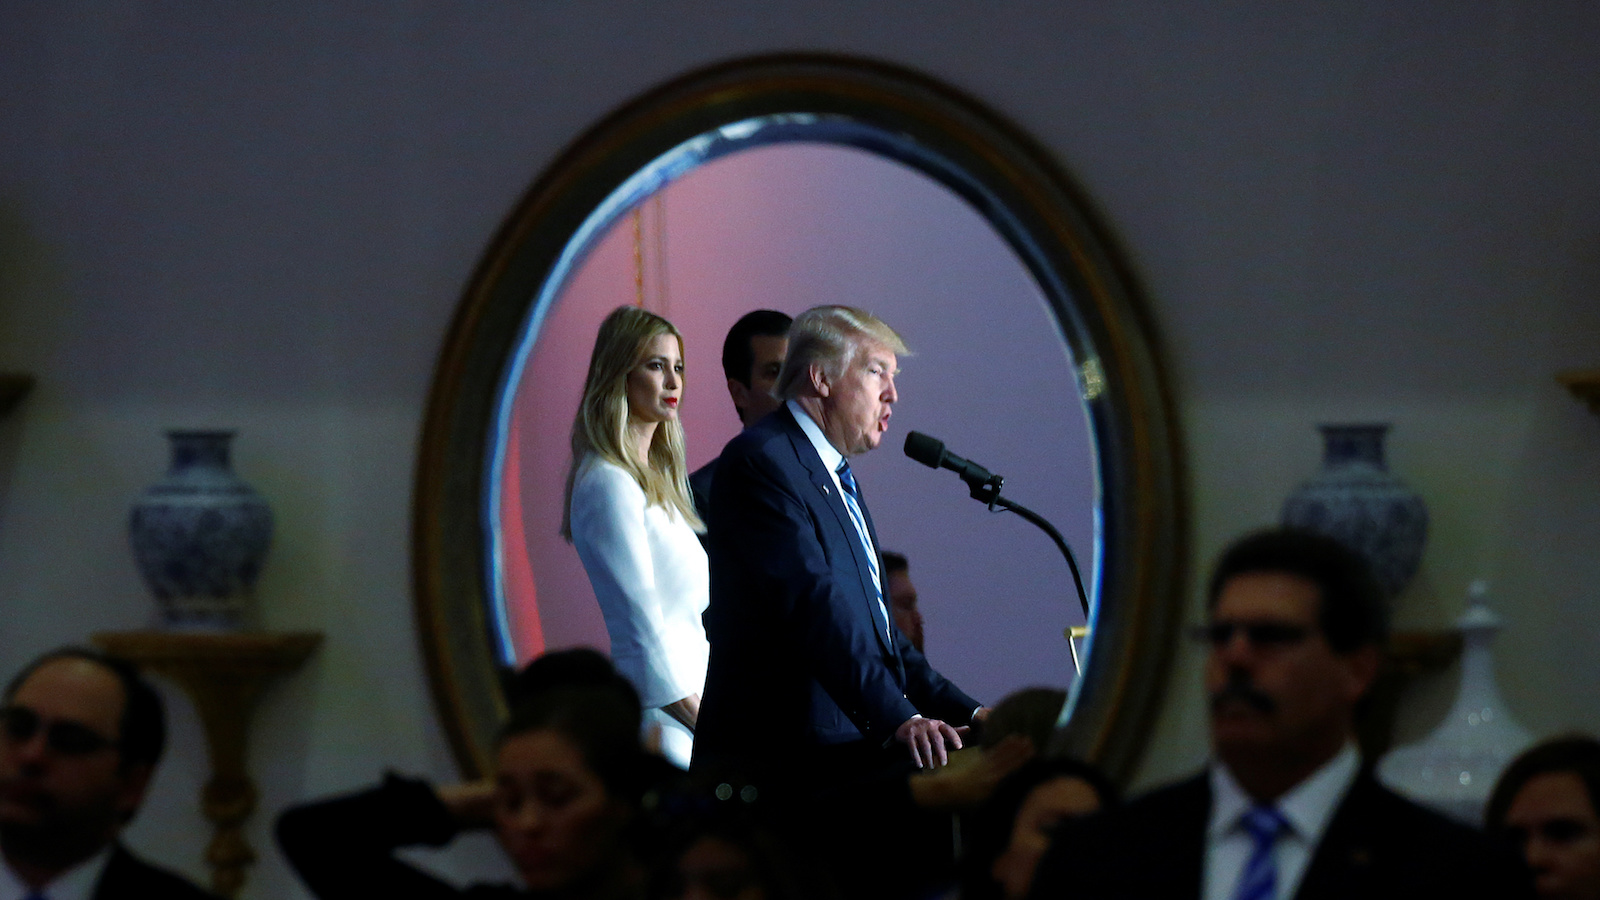 Republican presidential nominee Donald Trump and his daughter Ivanka Trump are reflected in a mirror as they attend a campaign event in Washington, DC, U.S., October 26, 2016. REUTERS/Carlo Allegri - RTX2QKUC